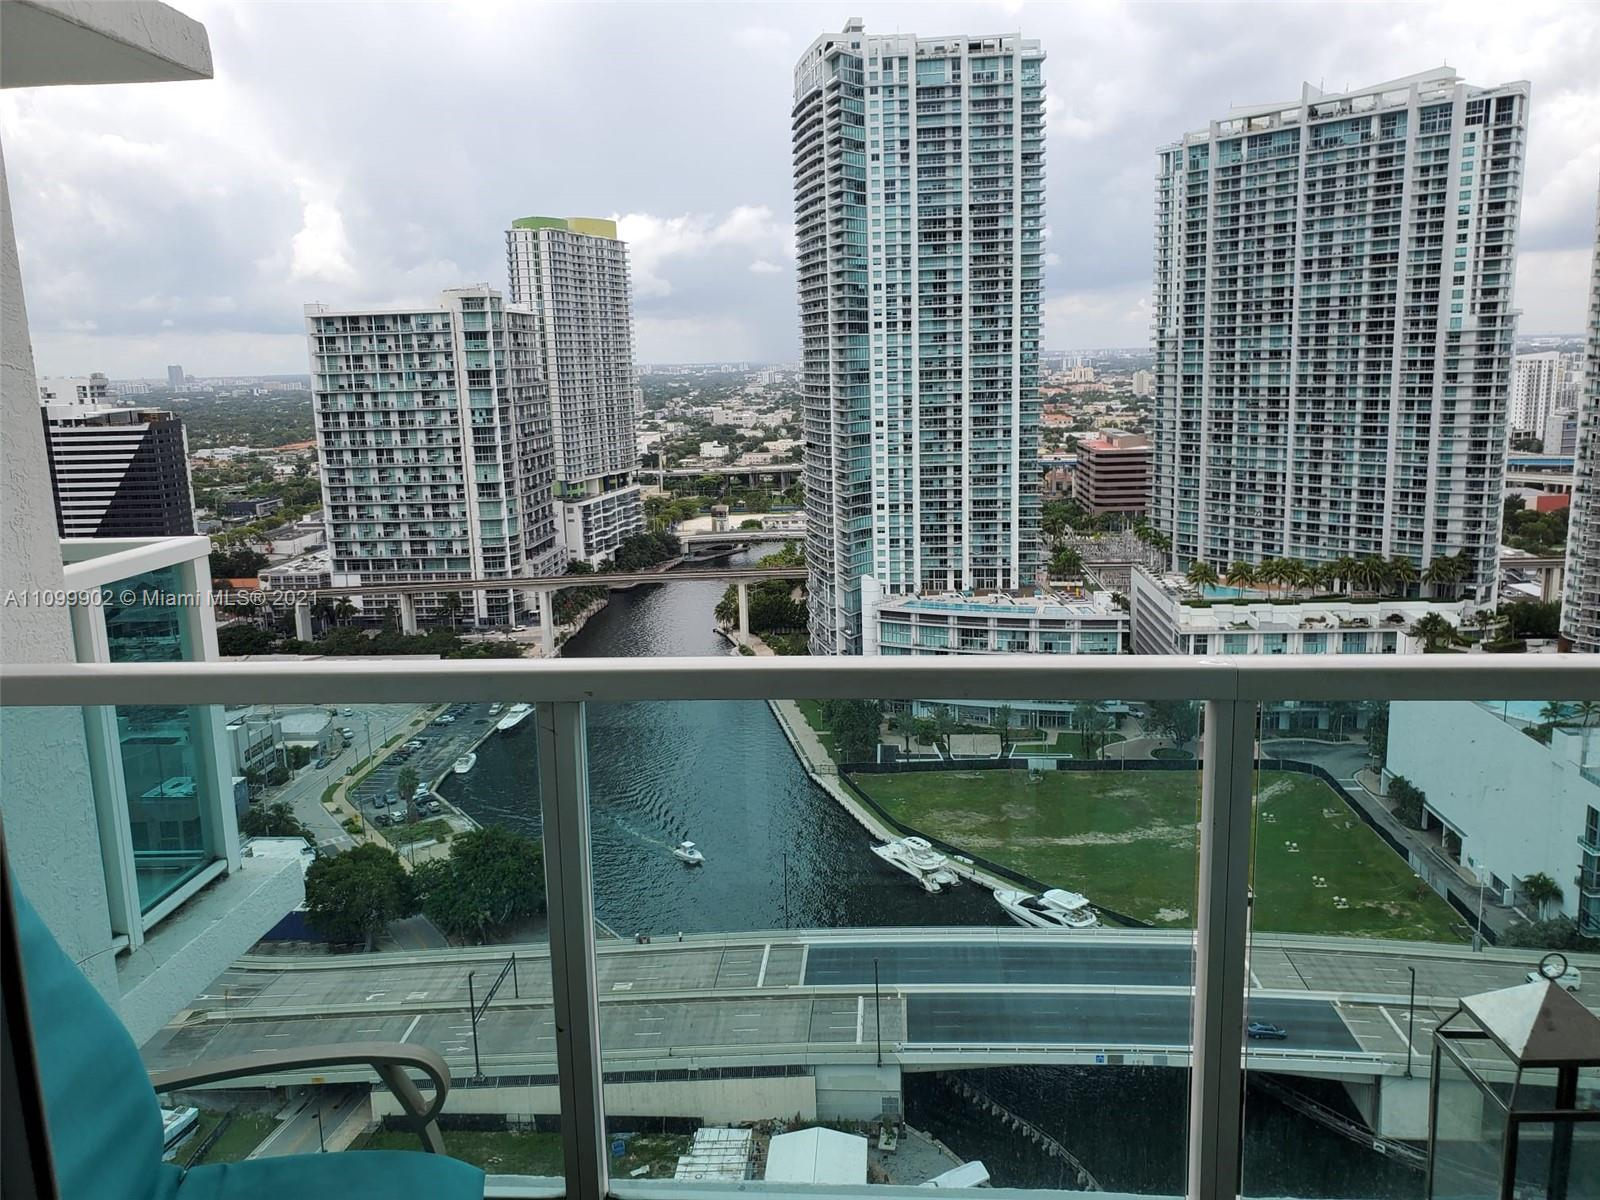 Located in the heart of Brickell one bedroom, one bathroom unit. Unit features: open balcony, marble floors, open kitchen. One assigned parking space and valet parking. Full-service building with community room, gym, pool, jacuzzi and more. Steps to metro mover, shops and restaurants. Quick access to I-95.